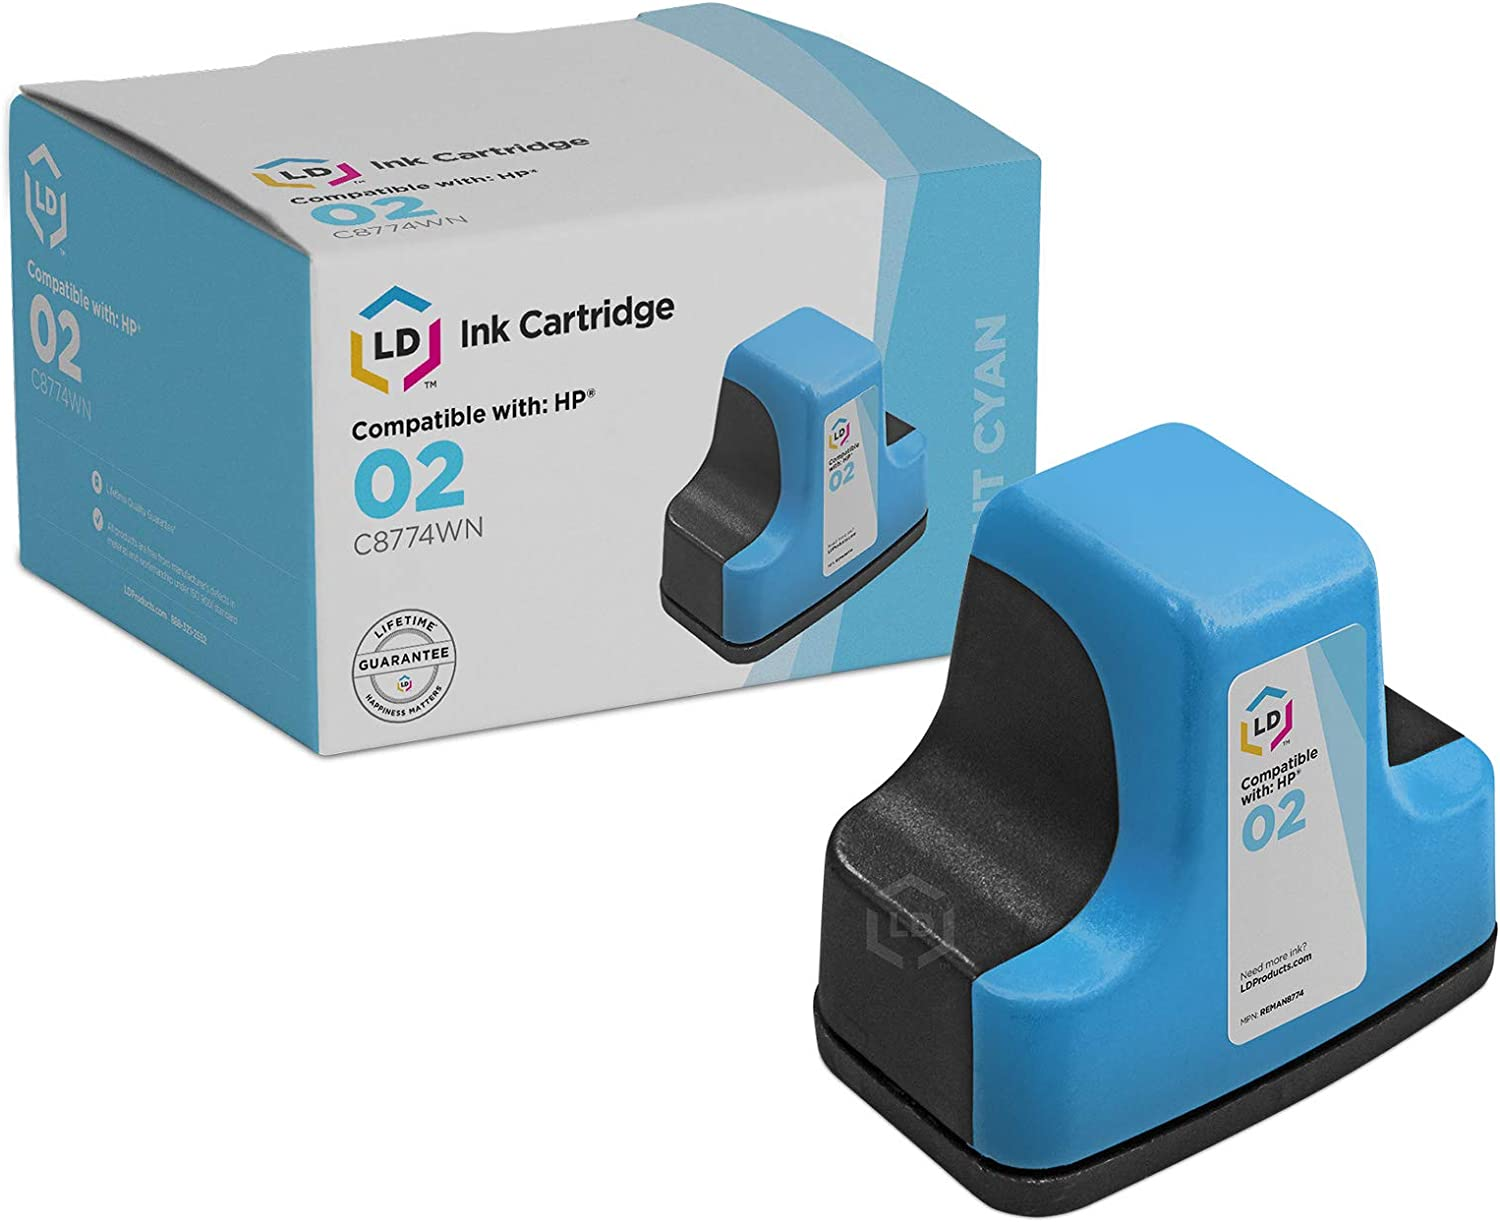 LD © Remanufactured Replacement Ink Cartridge for Hewlett Packard C8774WN (HP 02) Light Cyan